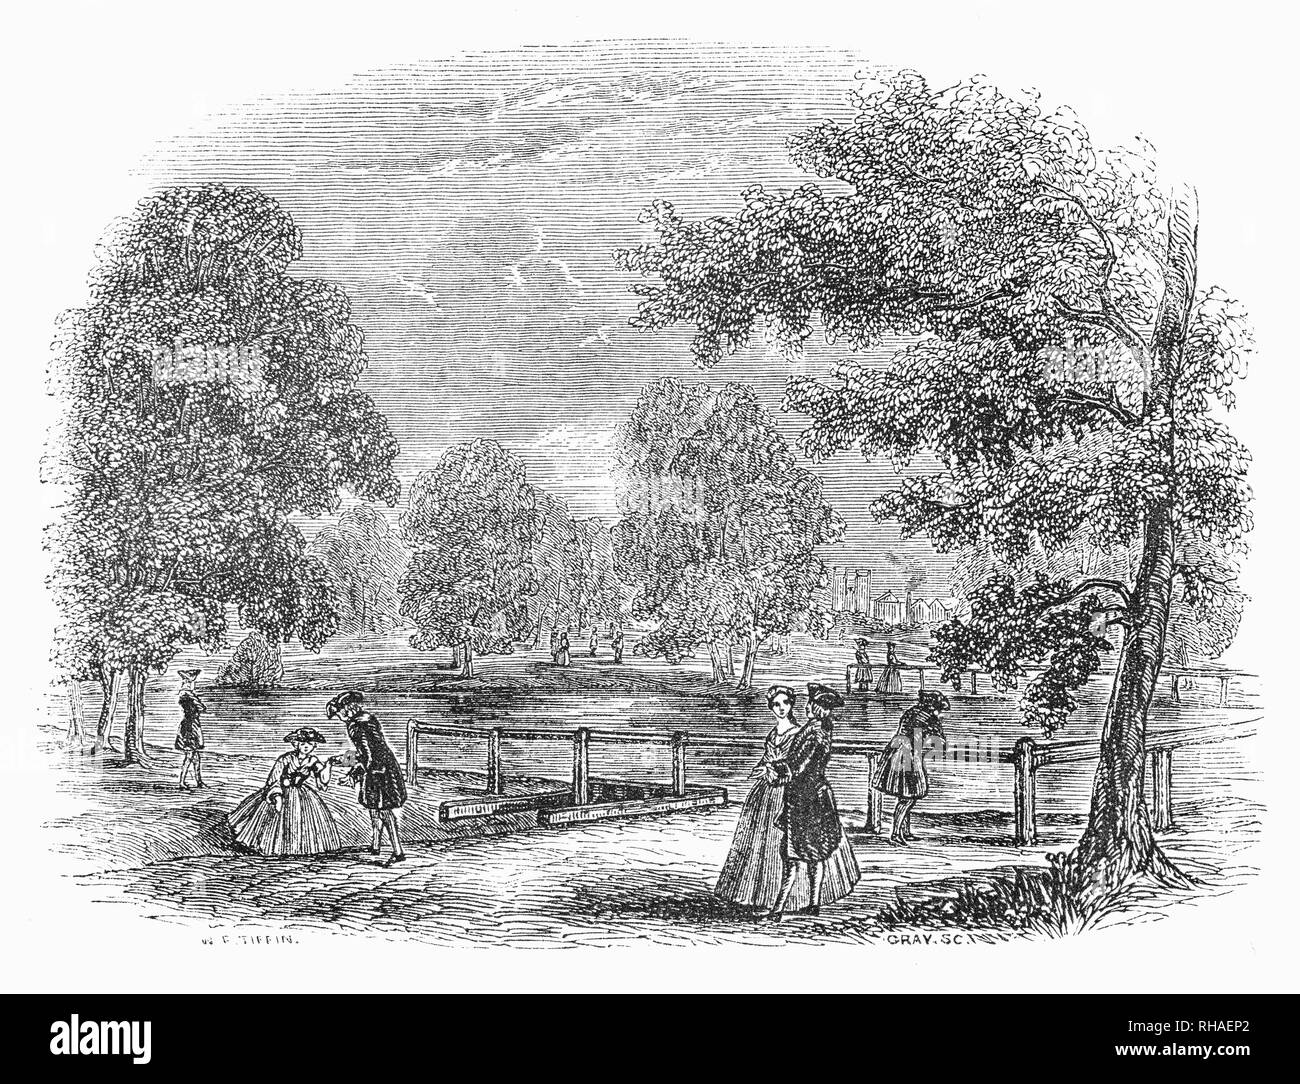 St James Park Black and White Stock Photos & Images - Alamy